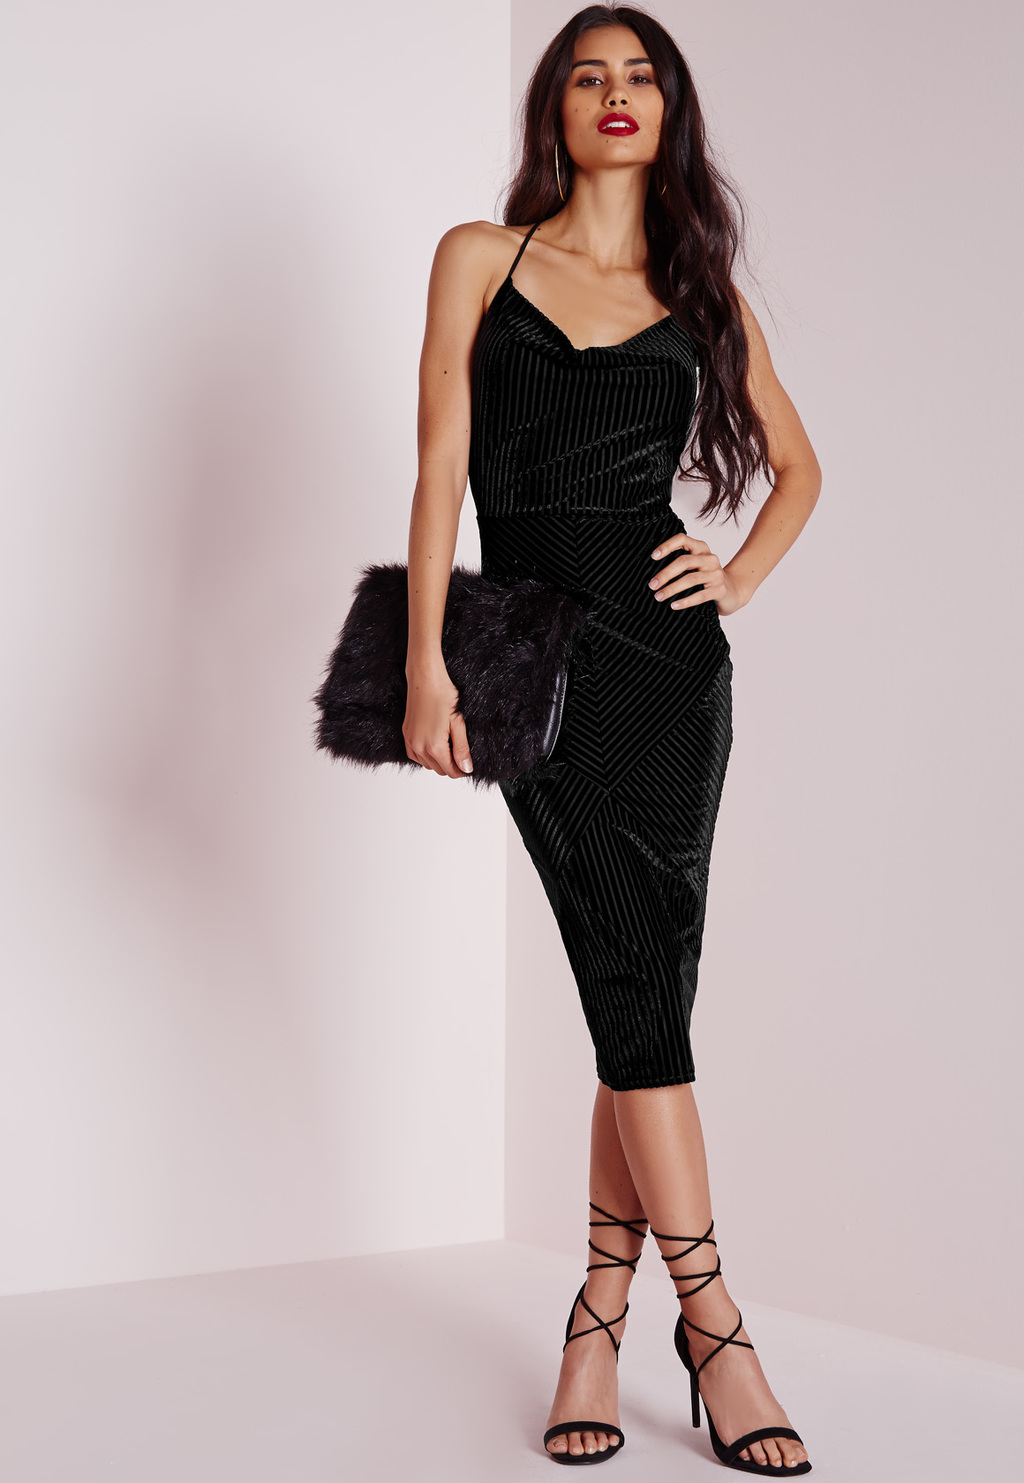 Ribbed Velvet Strappy Bodycon Dress Black, Black - length: below the knee; neckline: cowl/draped neck; sleeve style: spaghetti straps; pattern: plain; predominant colour: black; occasions: evening; sleeve length: sleeveless; pattern type: fabric; season: a/w 2015; wardrobe: event